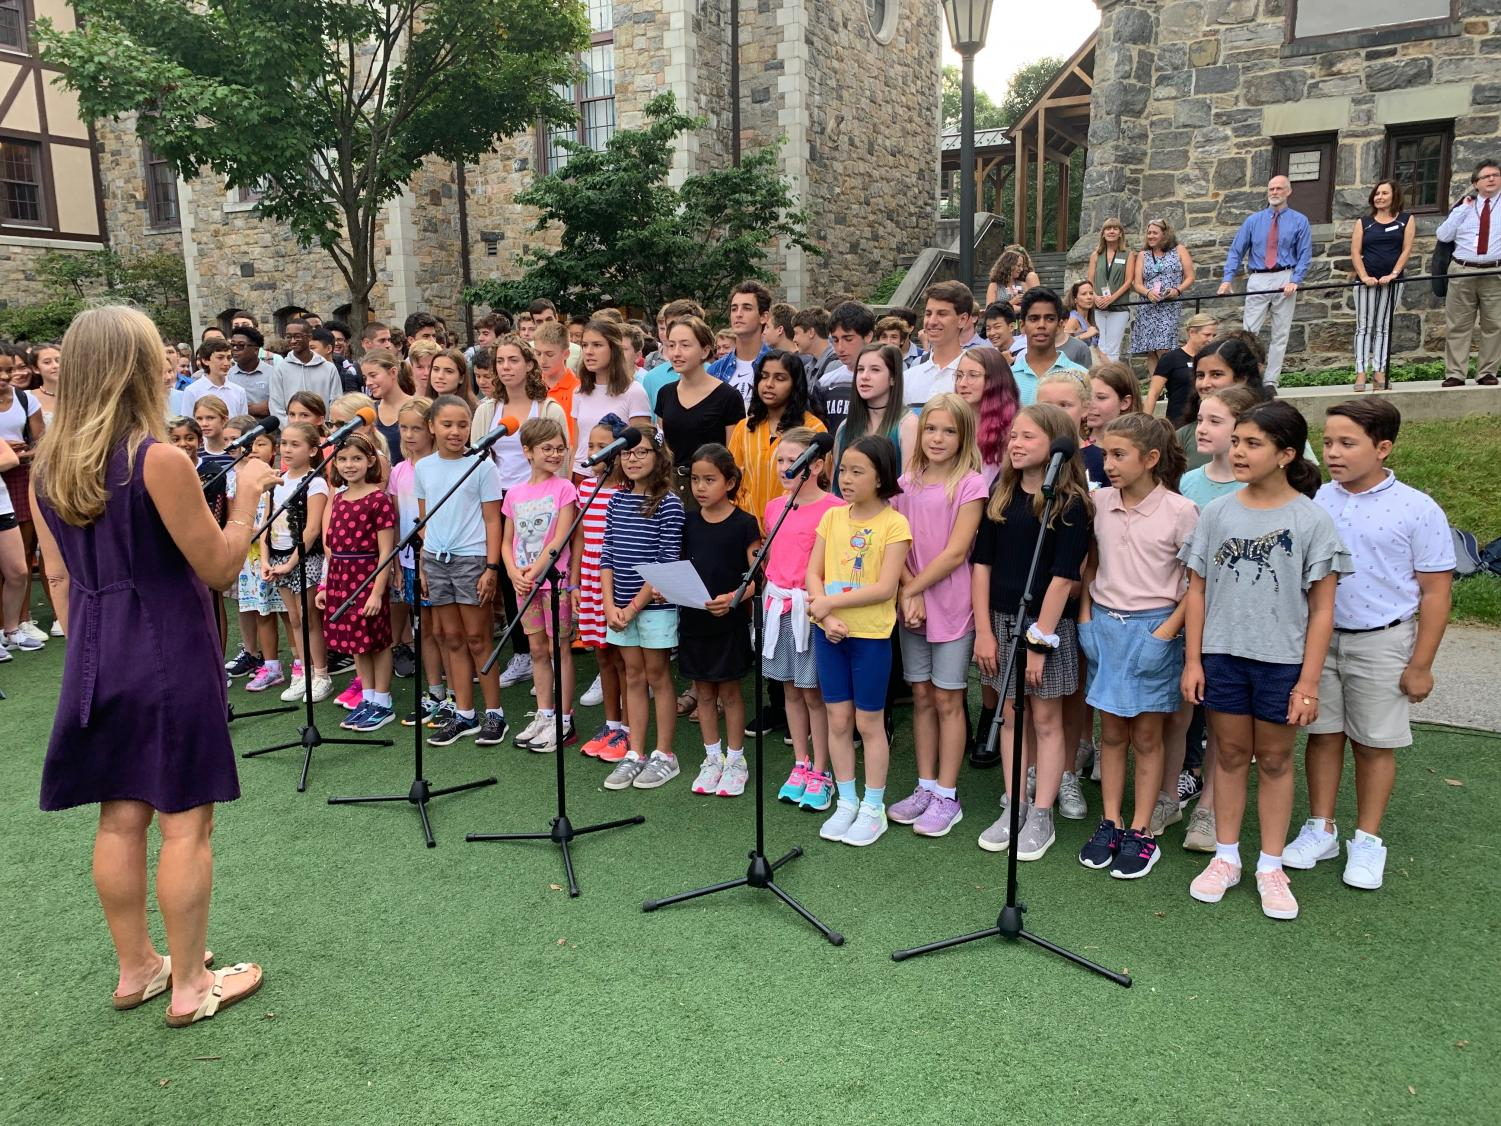 Upper School chorus teacher May Steinberg directs lower and upper school chorus students in their singing of the Hackley Alma Mater. The song was followed by speeches from Taylor Robin and Head of School Mr. Wirtz. This tradition marks the beginning of the school year which is bookended by a Commencement ceremony.